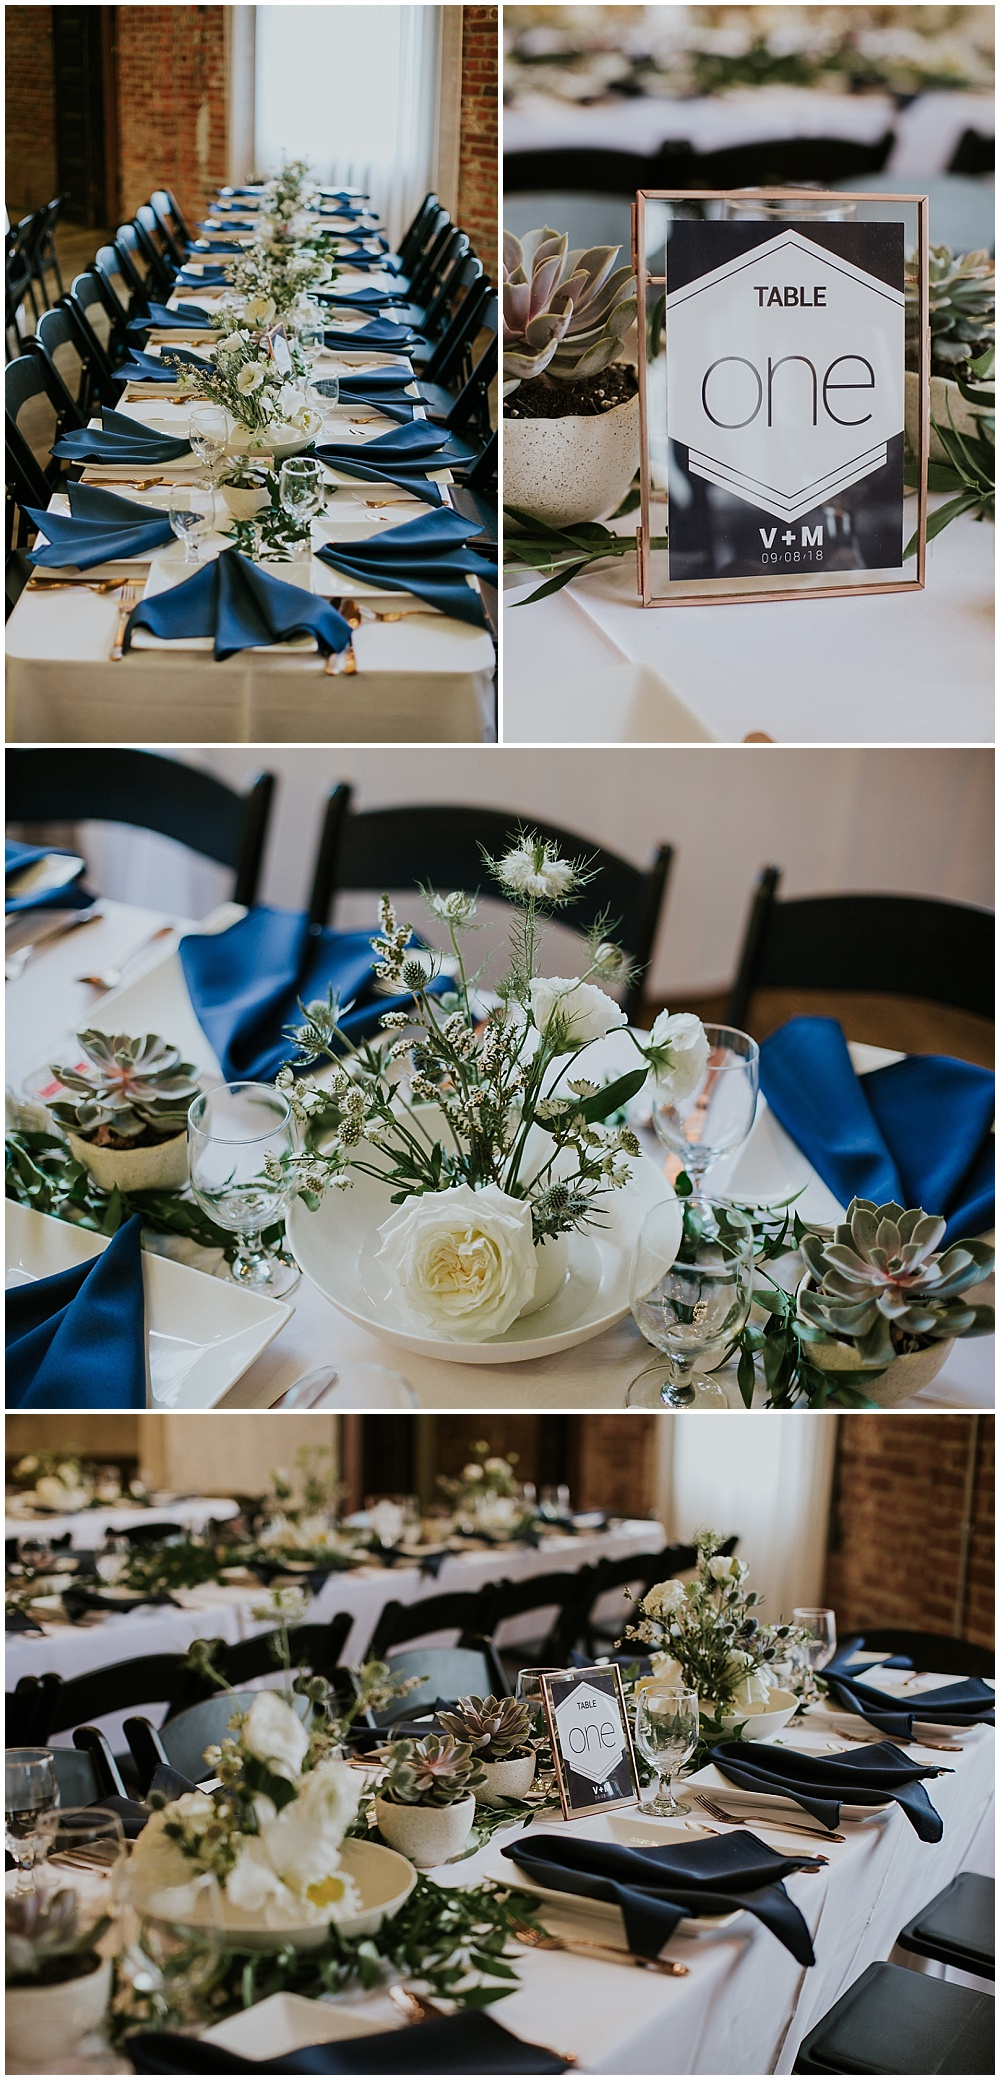 Beautiful green, white and blue wedding tablescape with navy napkins on white linens with assortments of succulents and white roses | Korean-American intimate multicultural wedding in Neidhammer coffee shop